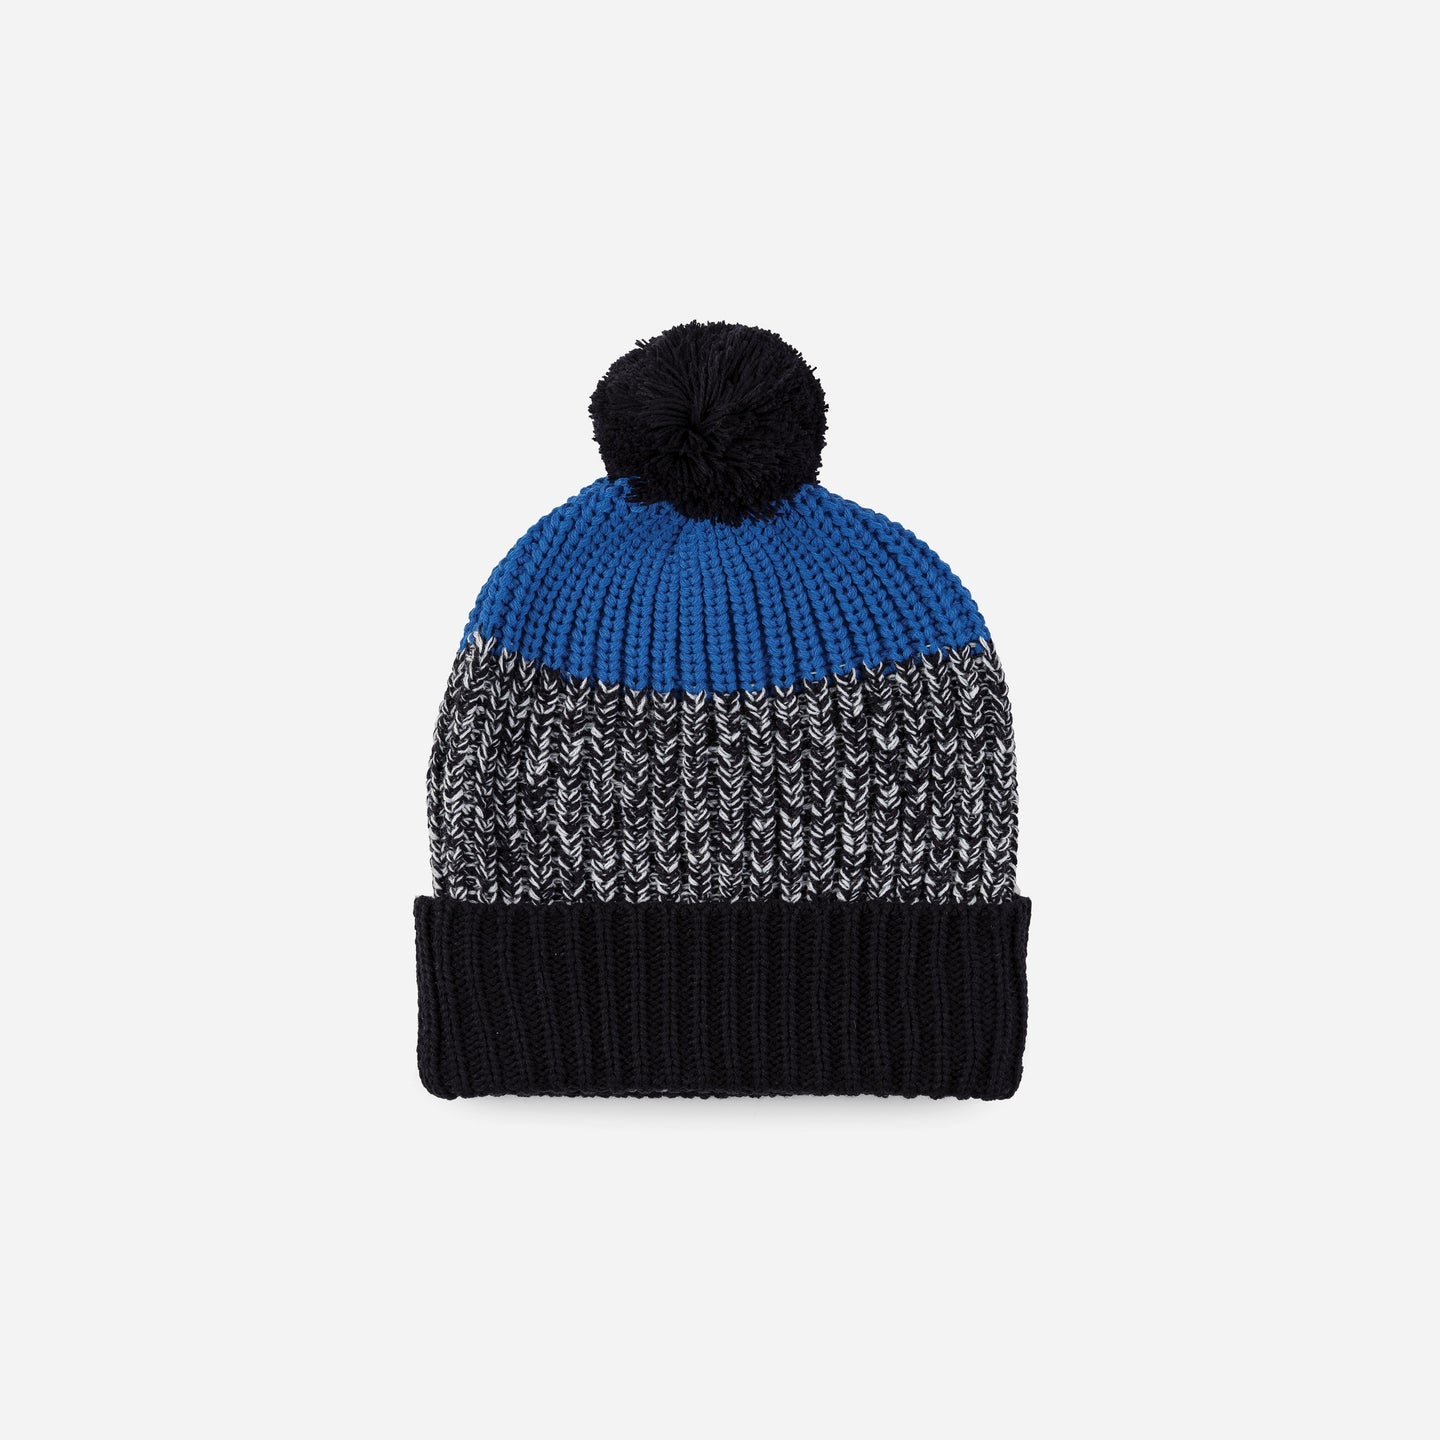 Kids Pom Hat Knit